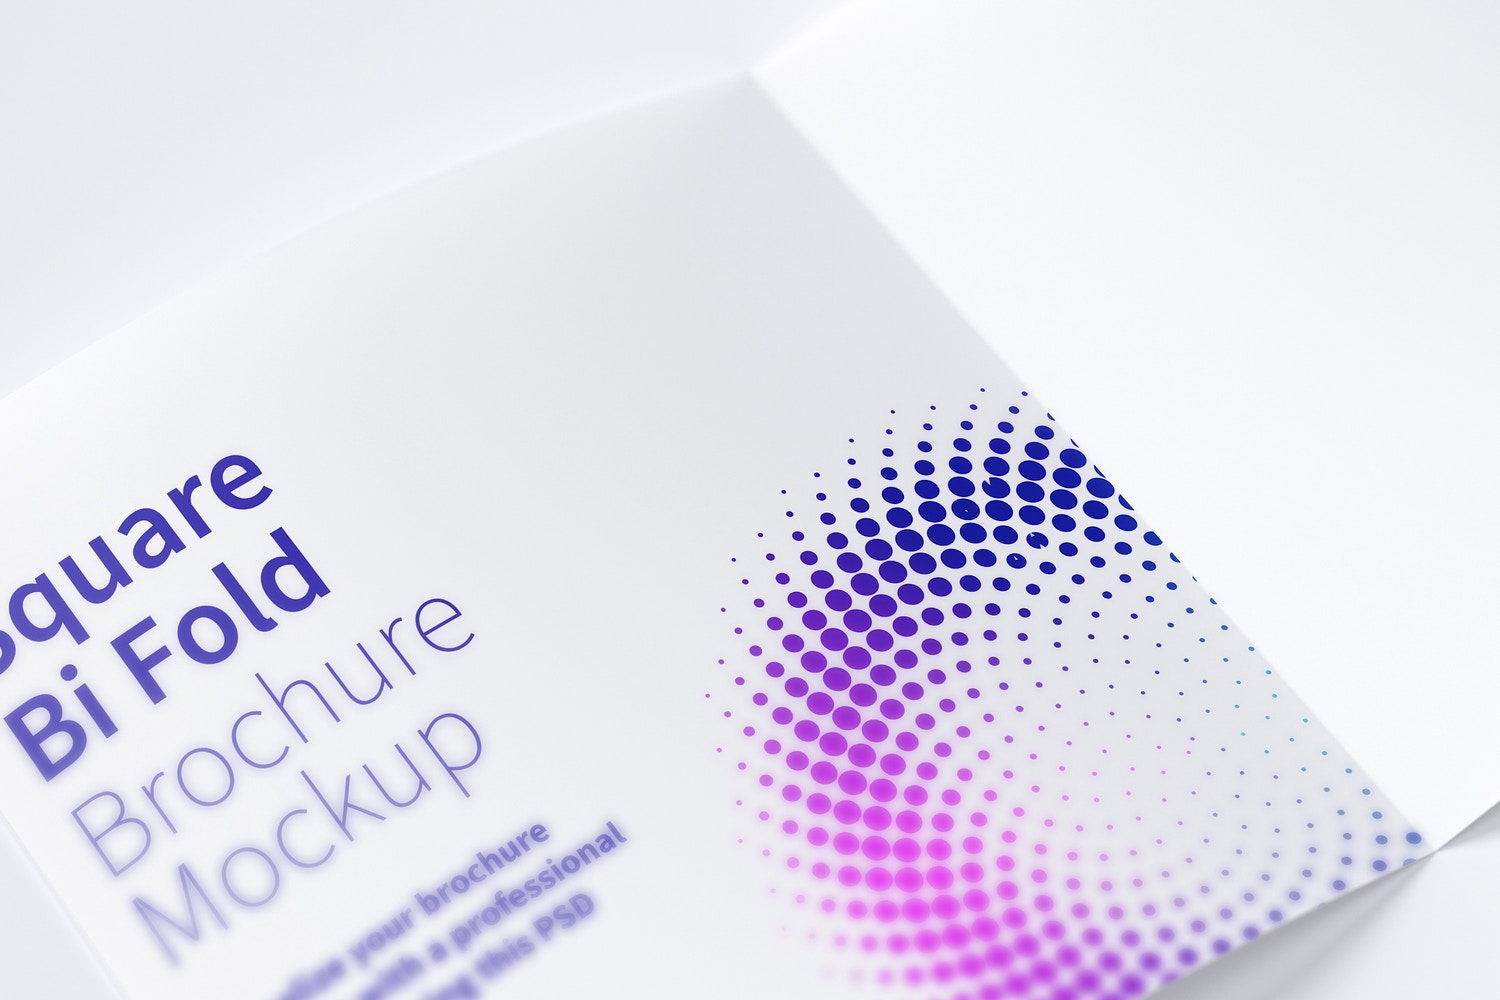 Square Bi Fold Brochure Mockup 05 by Original Mockups on Original Mockups